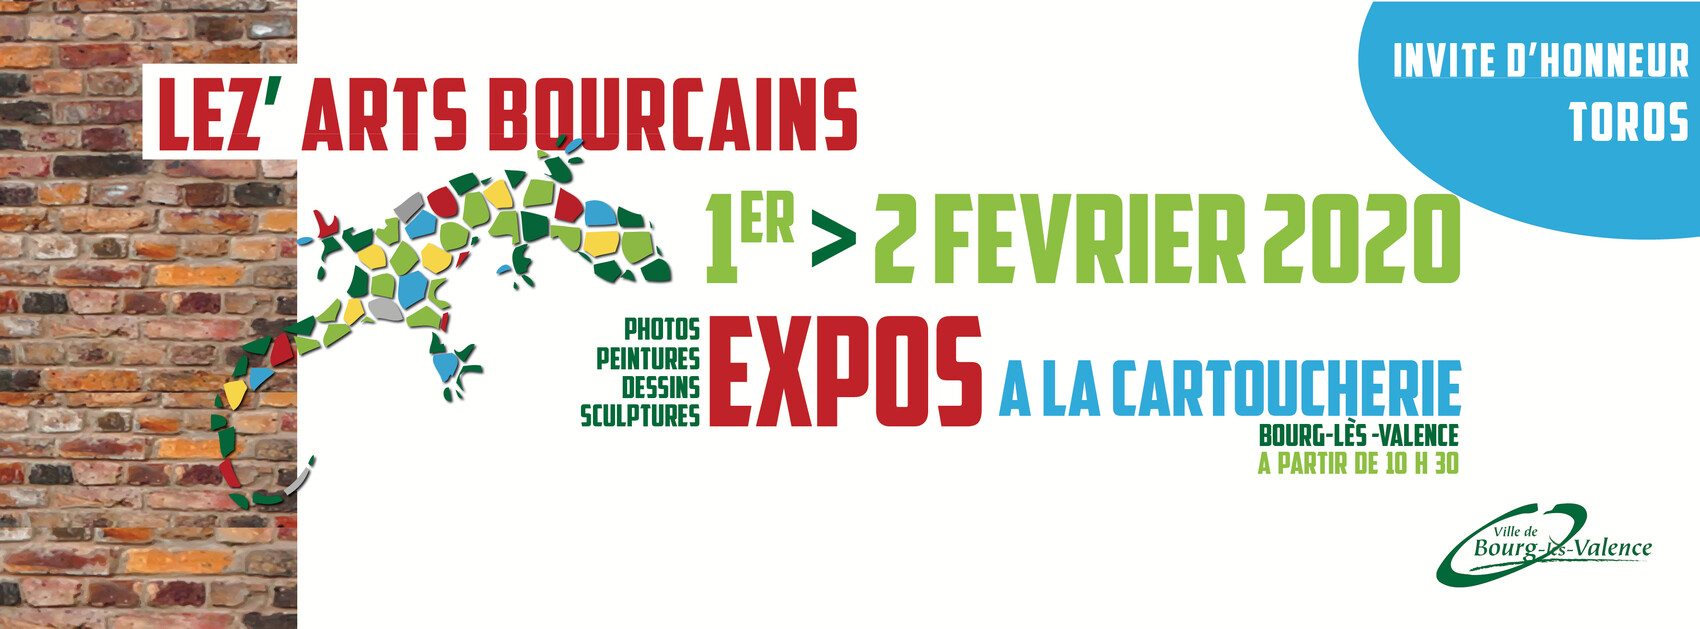 Lez' arts bourcains